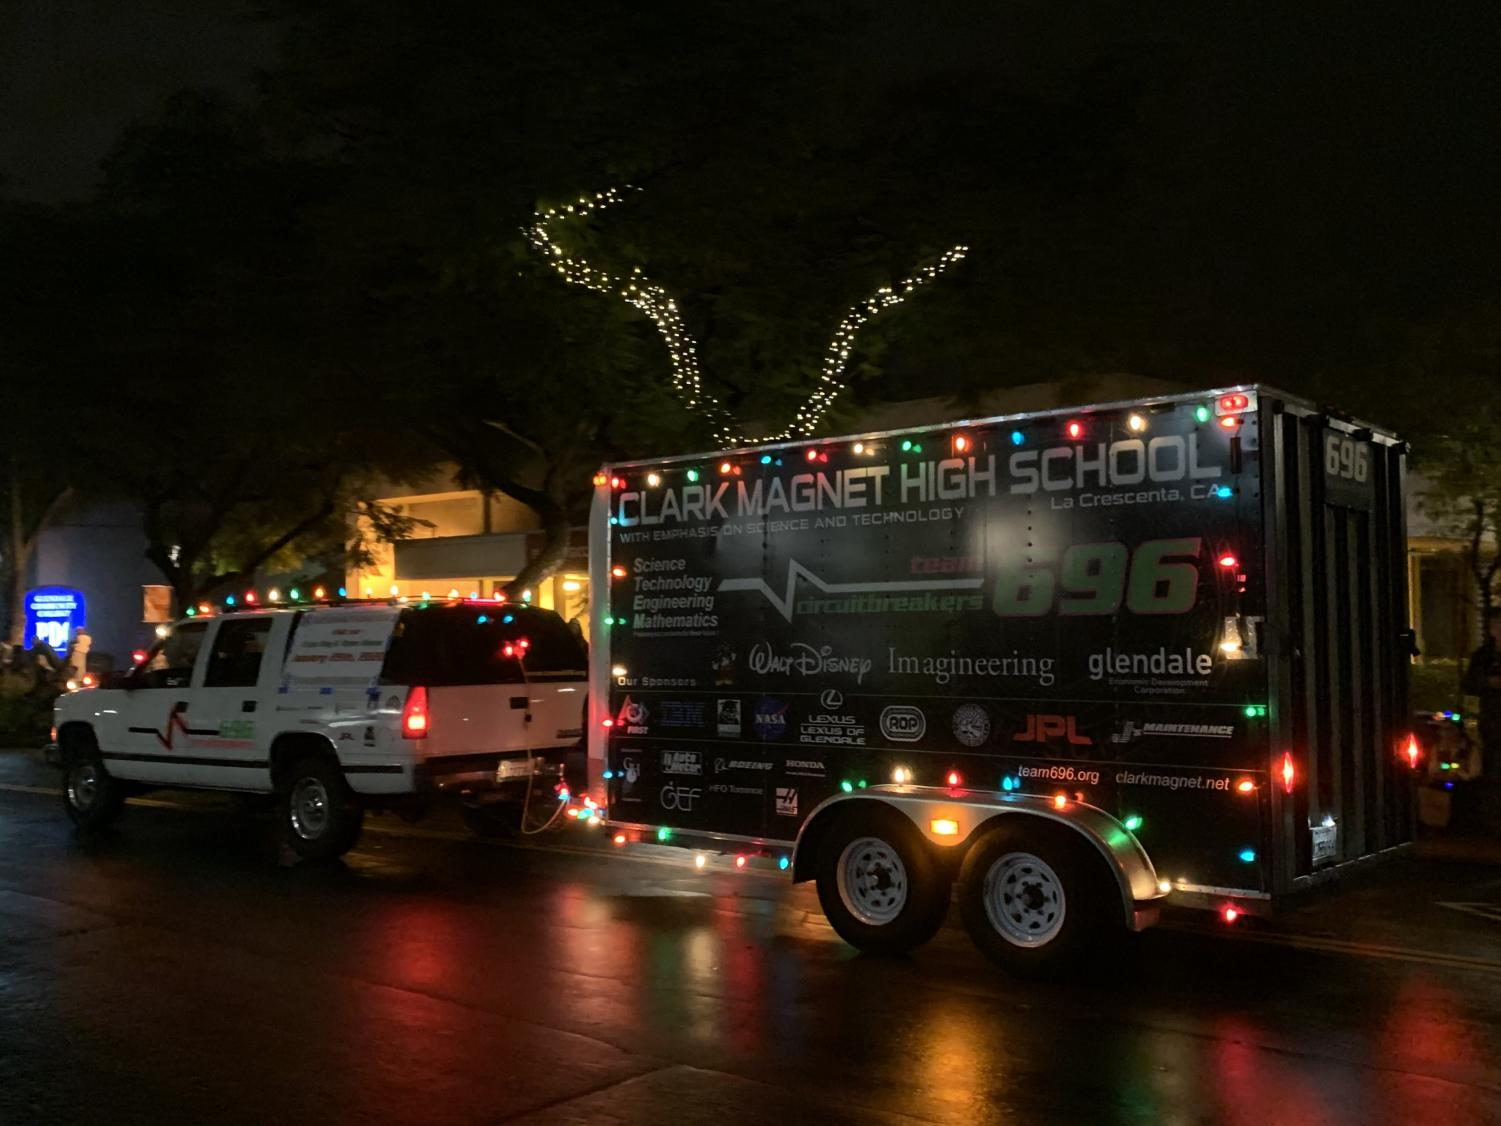 The Clark Truck decorated in Christmas lights that was used to store the robots that were showcased.